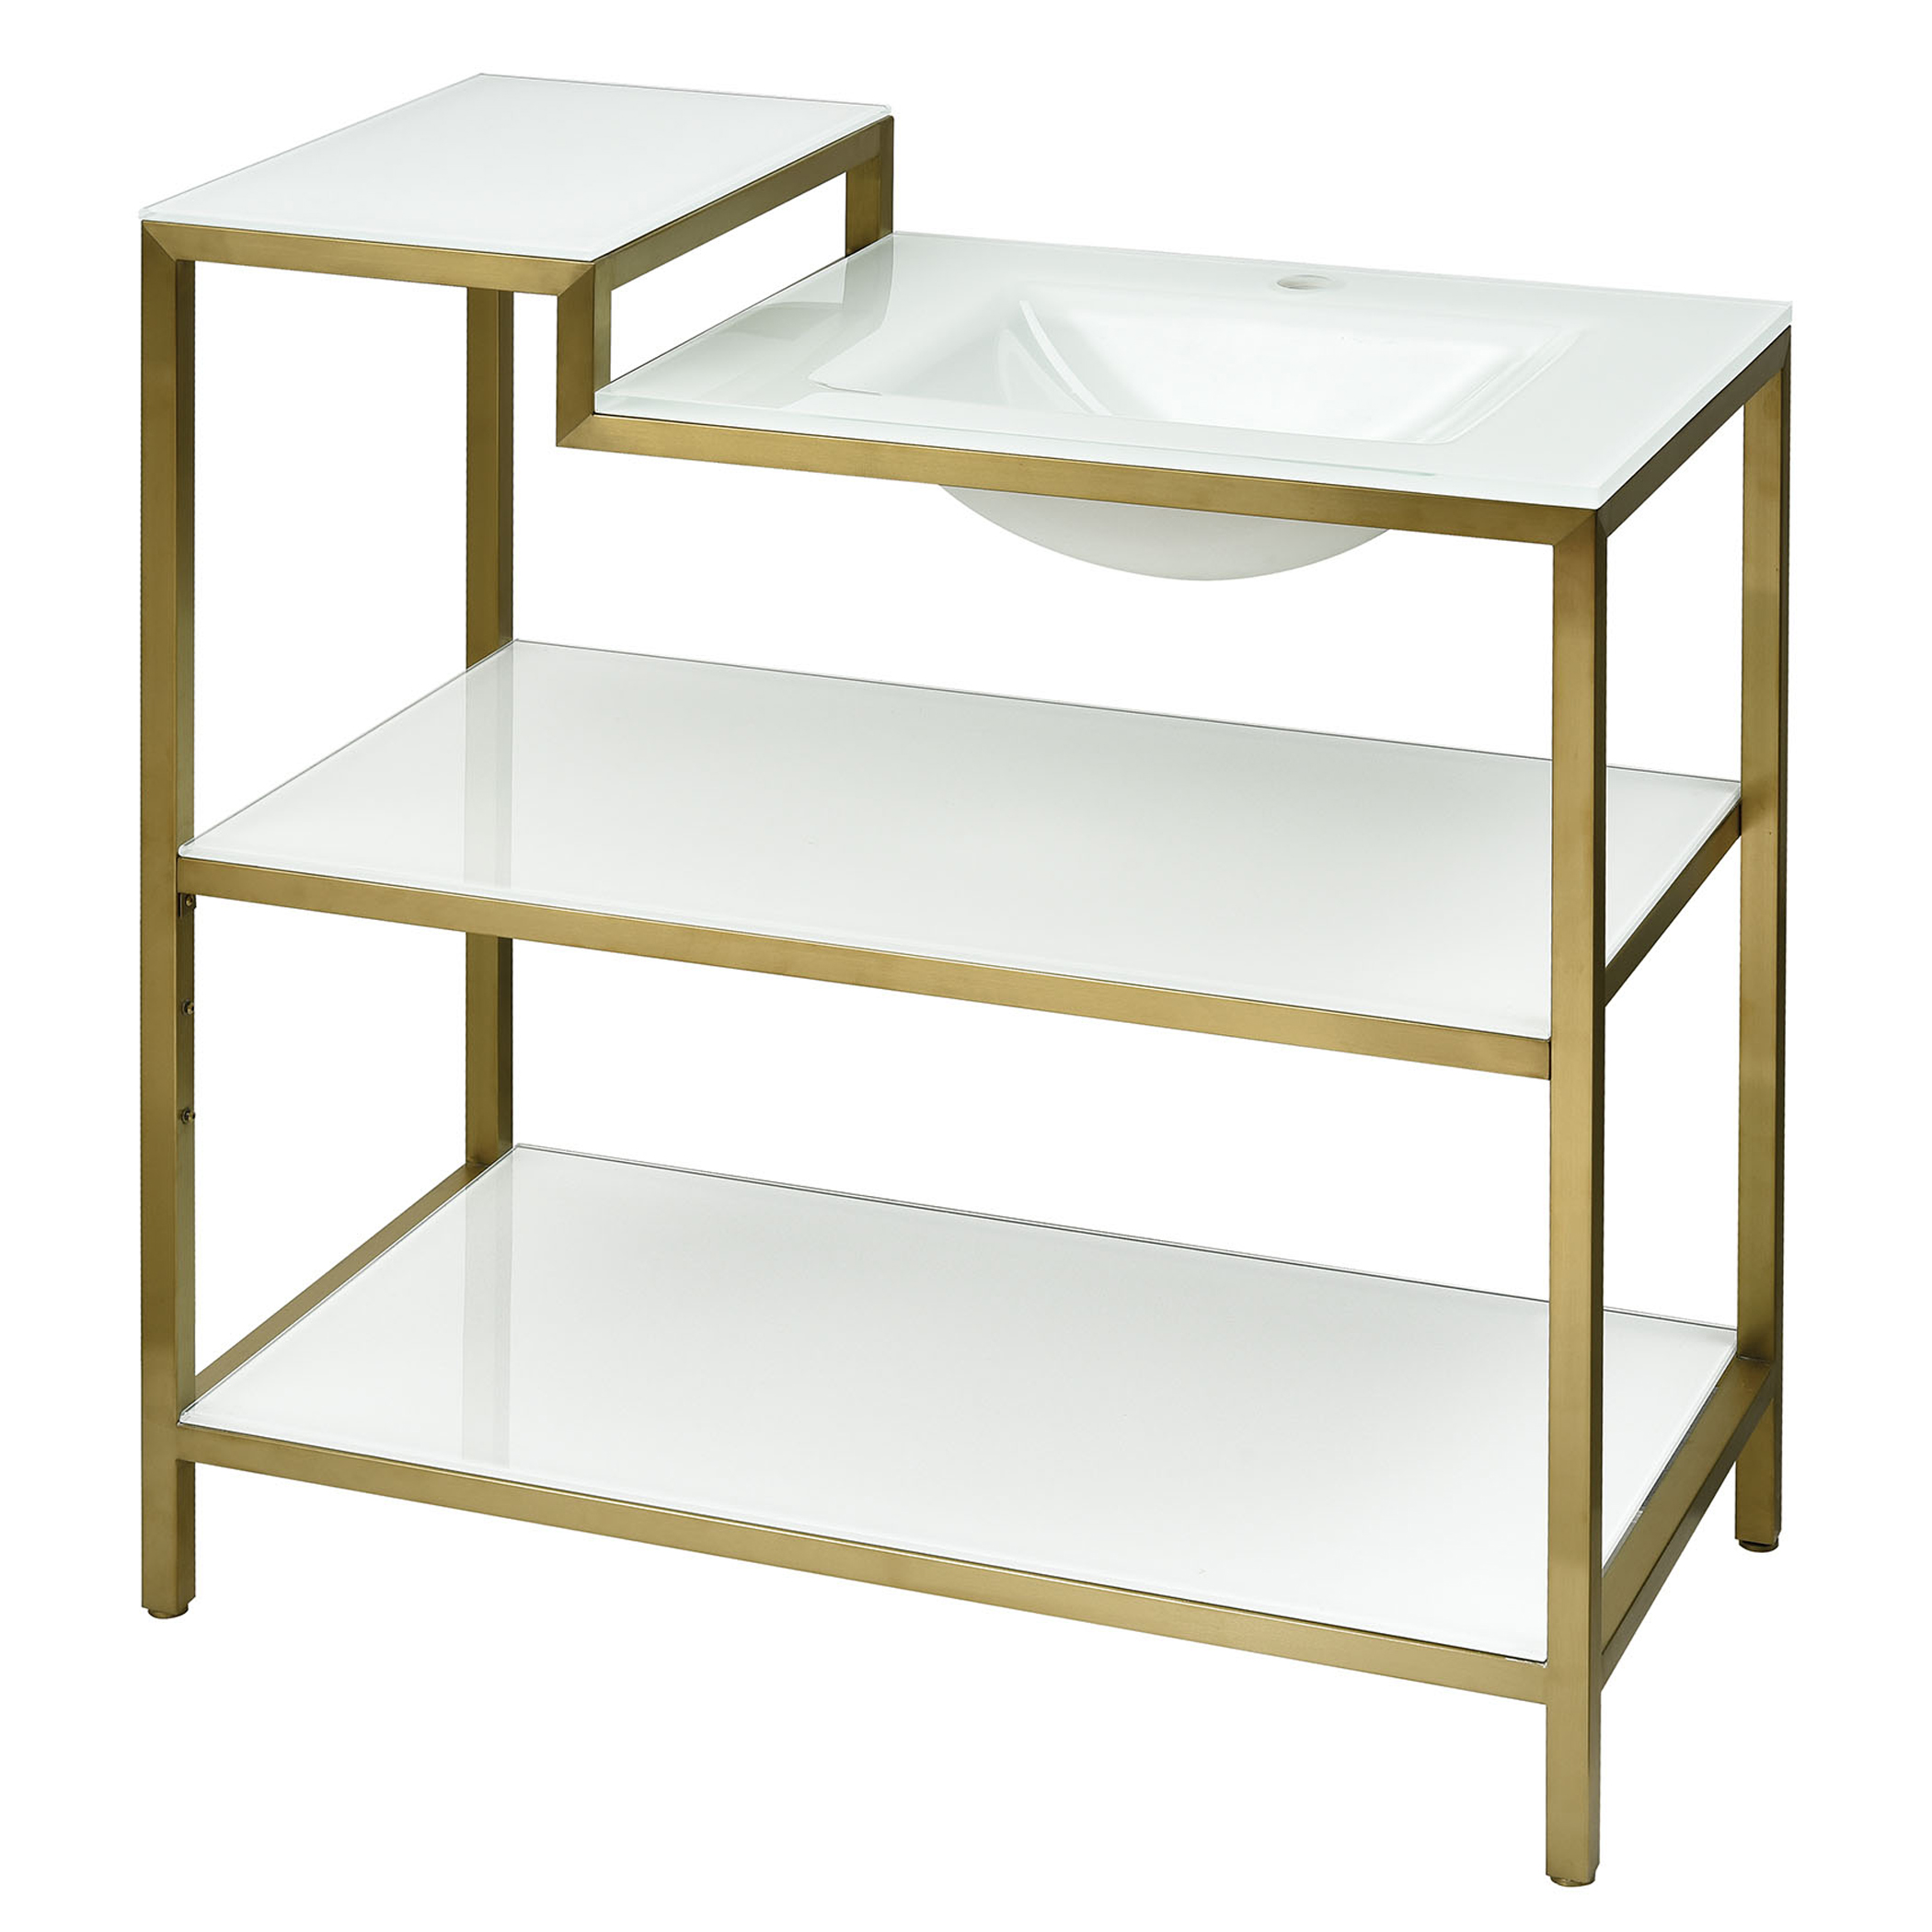 Satin Gold Vanity Console with Integral White Glass Sink and White Glass Shelves